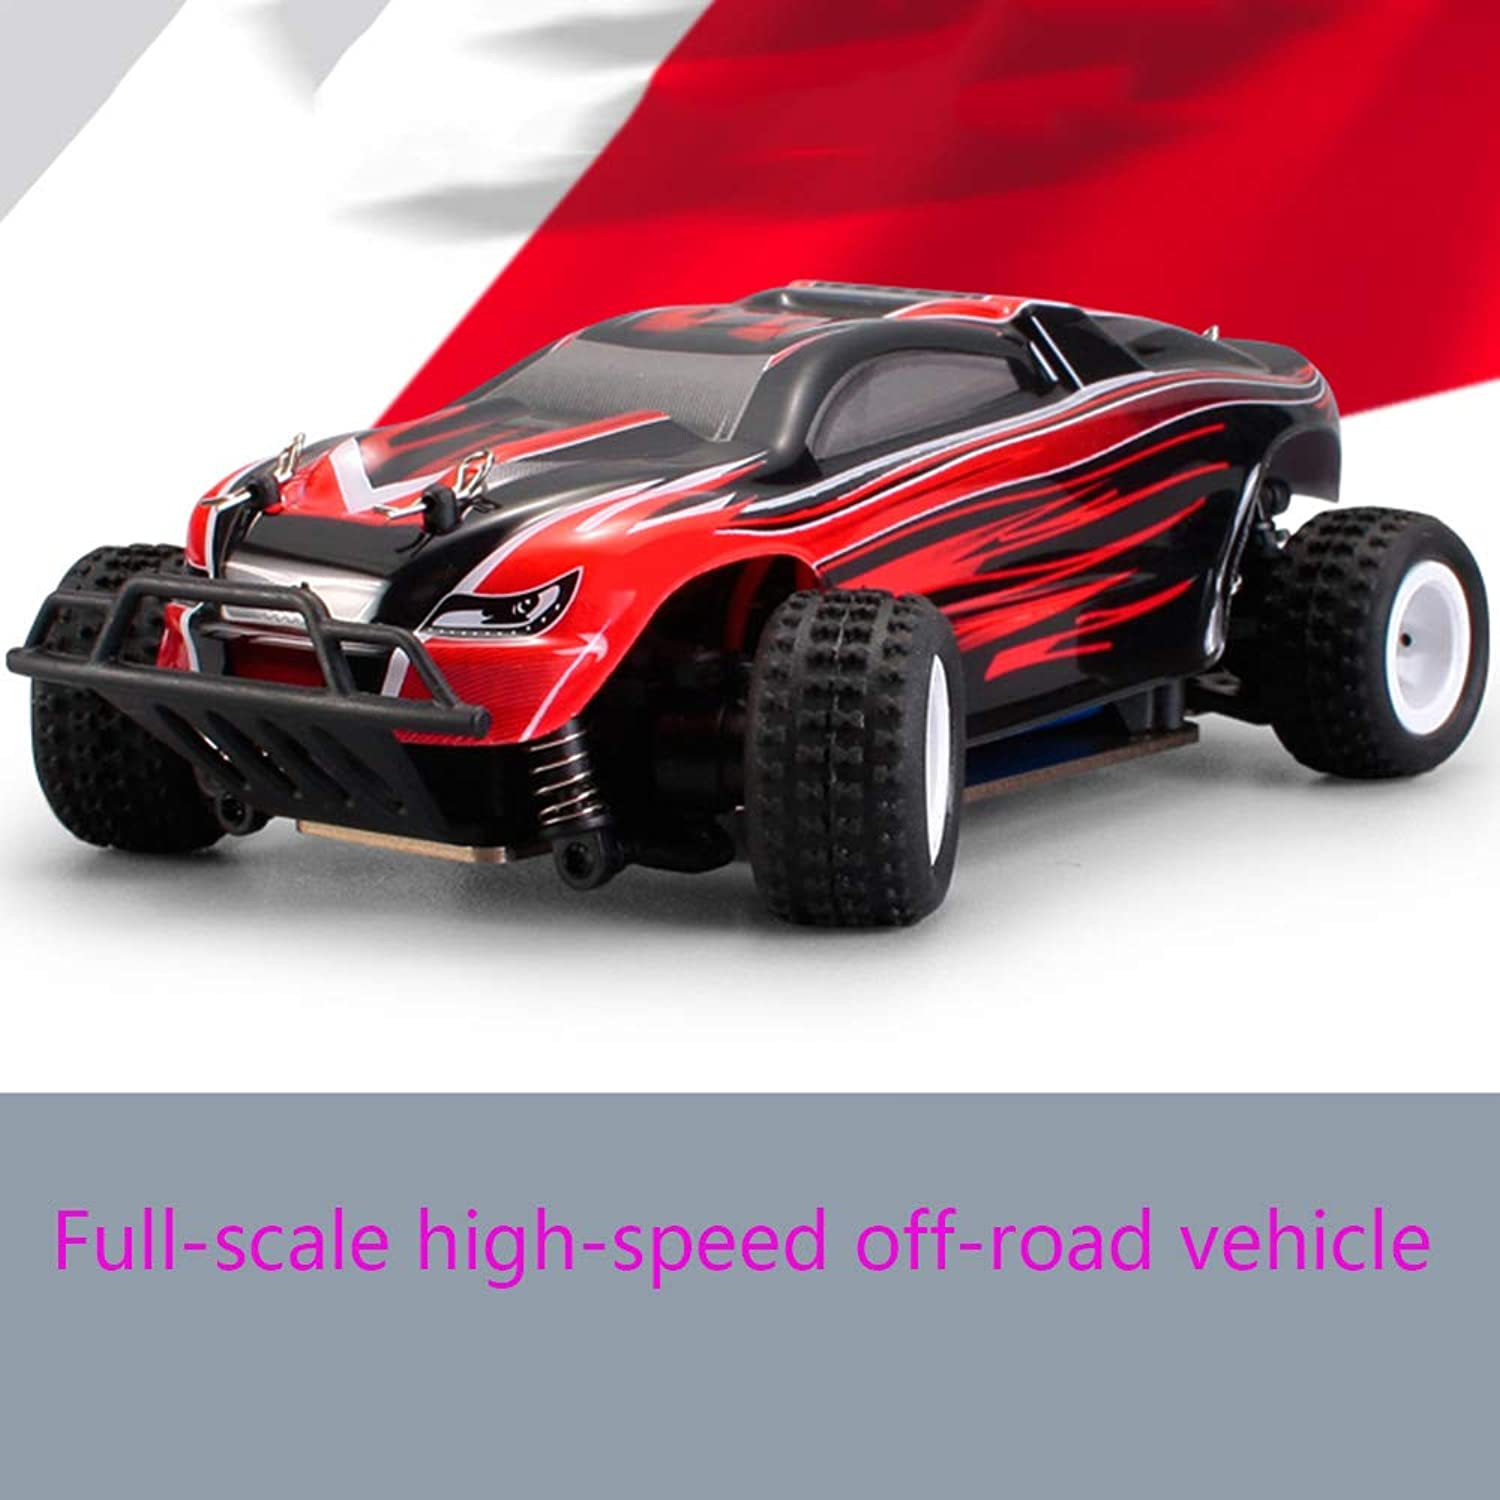 Ledu Remote Remote Remote control car, 1 28 offroad toy car, fourwheel drive highspeed electric offroad vehicle boy adult remote control car racing toy, rechargeable, competition hobby 3ddd87